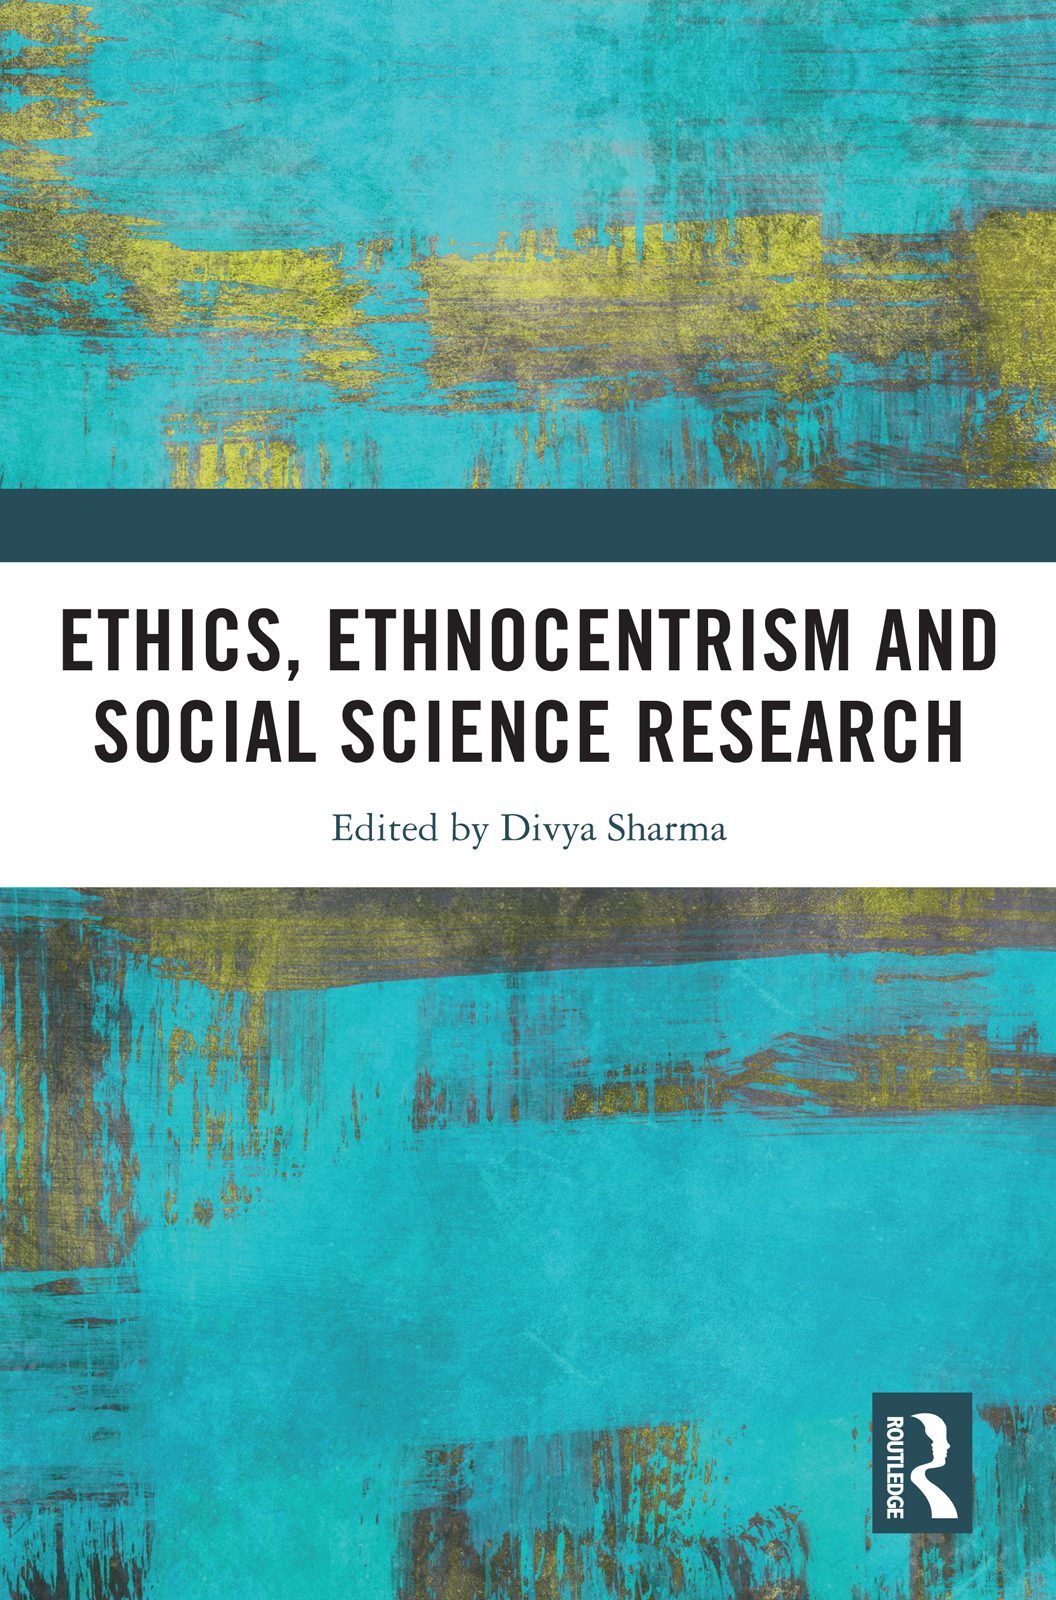 Methodological challenges and ethical dilemmas